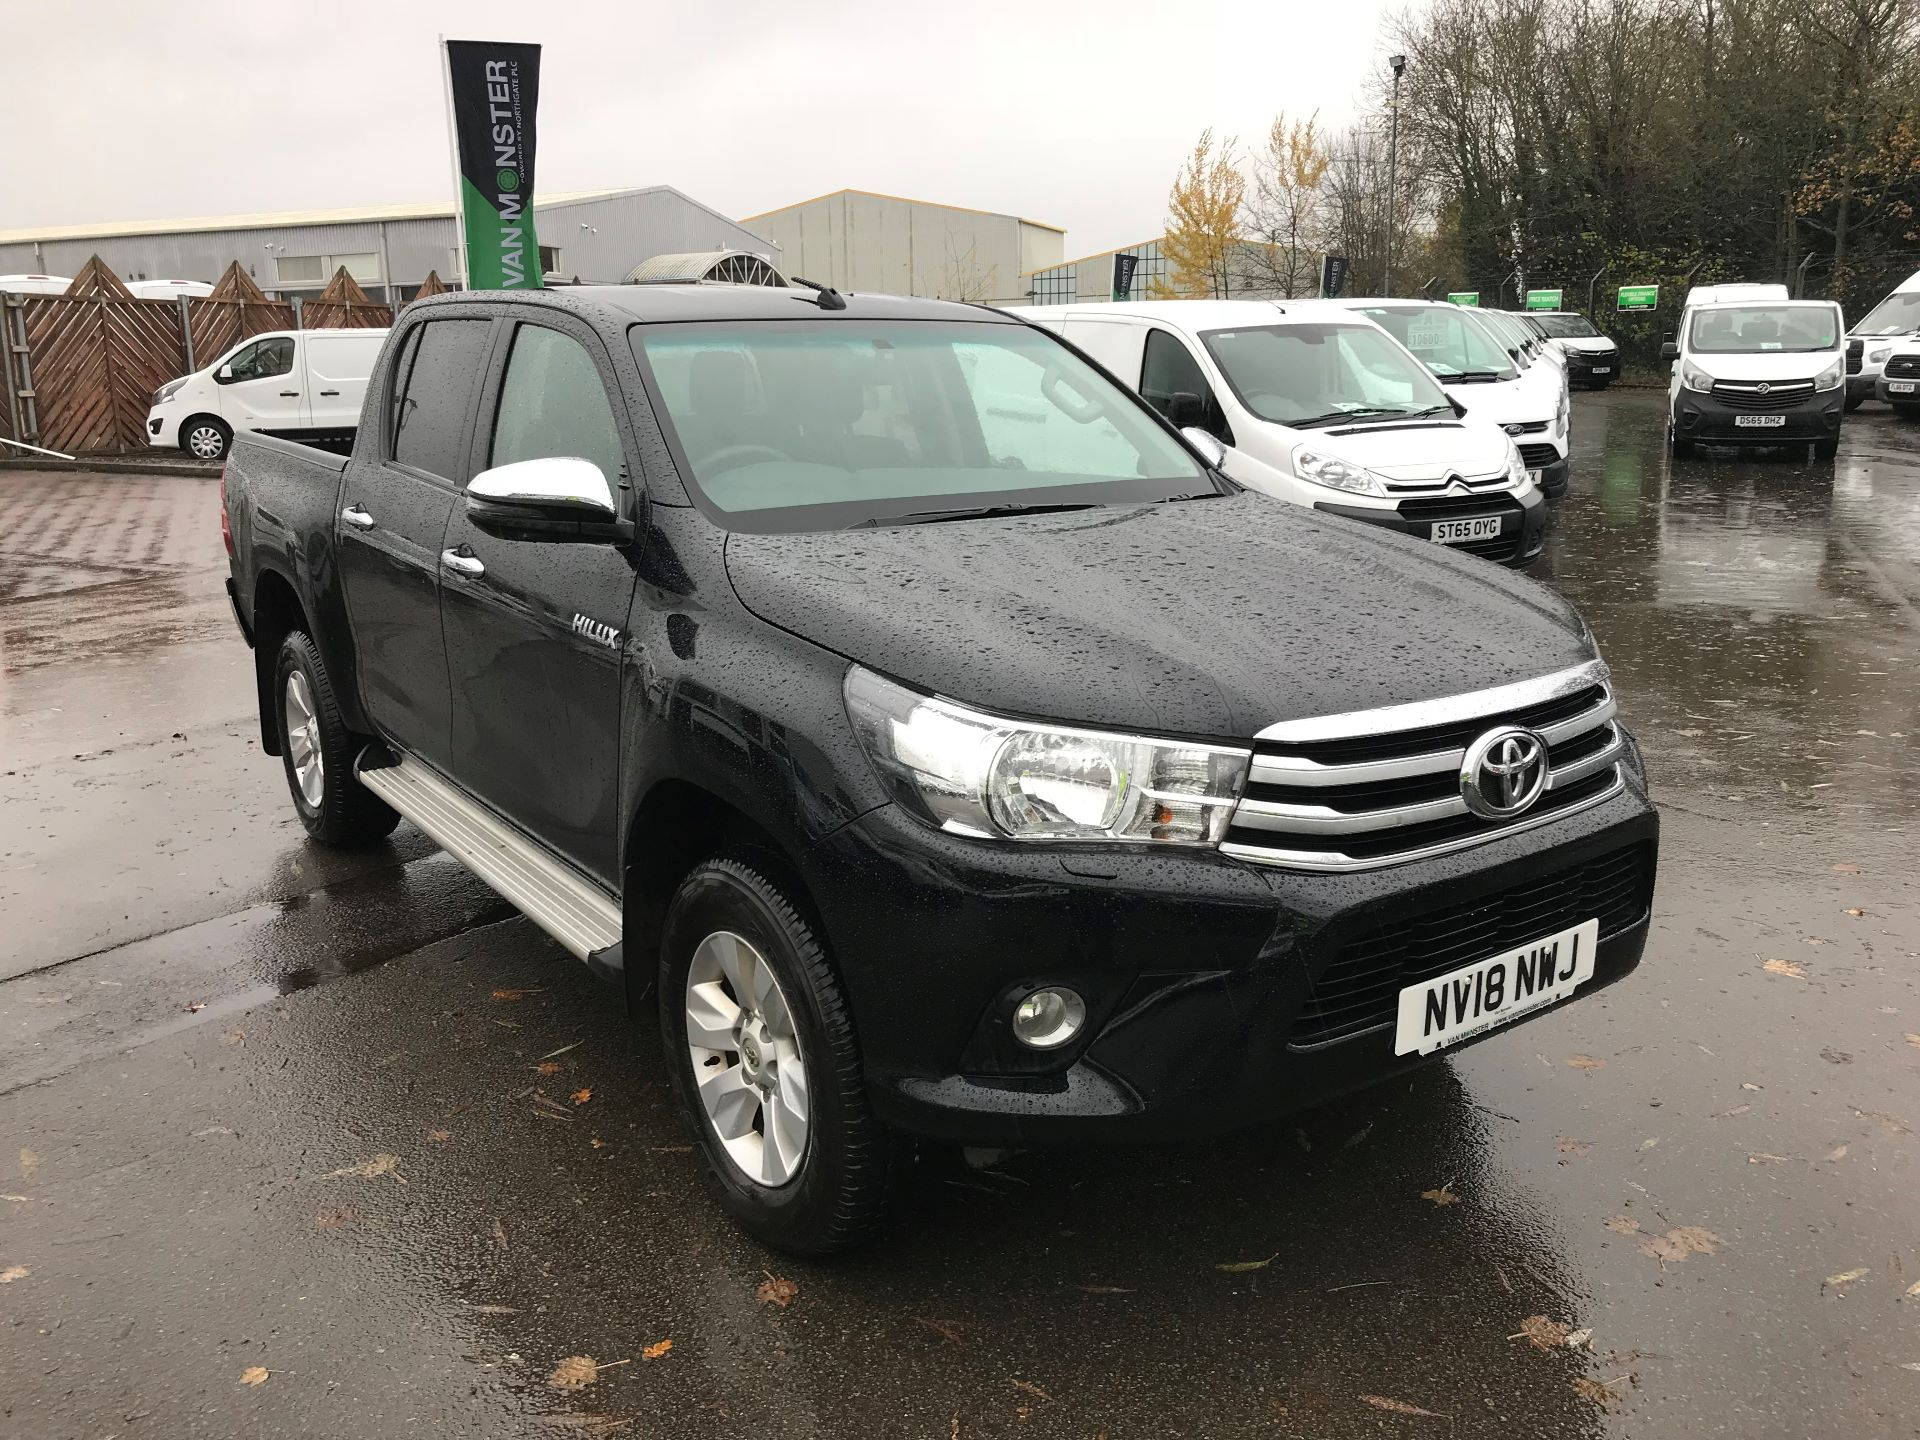 2018 Toyota Hilux ICON D/CAB PICK UP 2.4 D-4D EURO 6 (NV18NWJ)